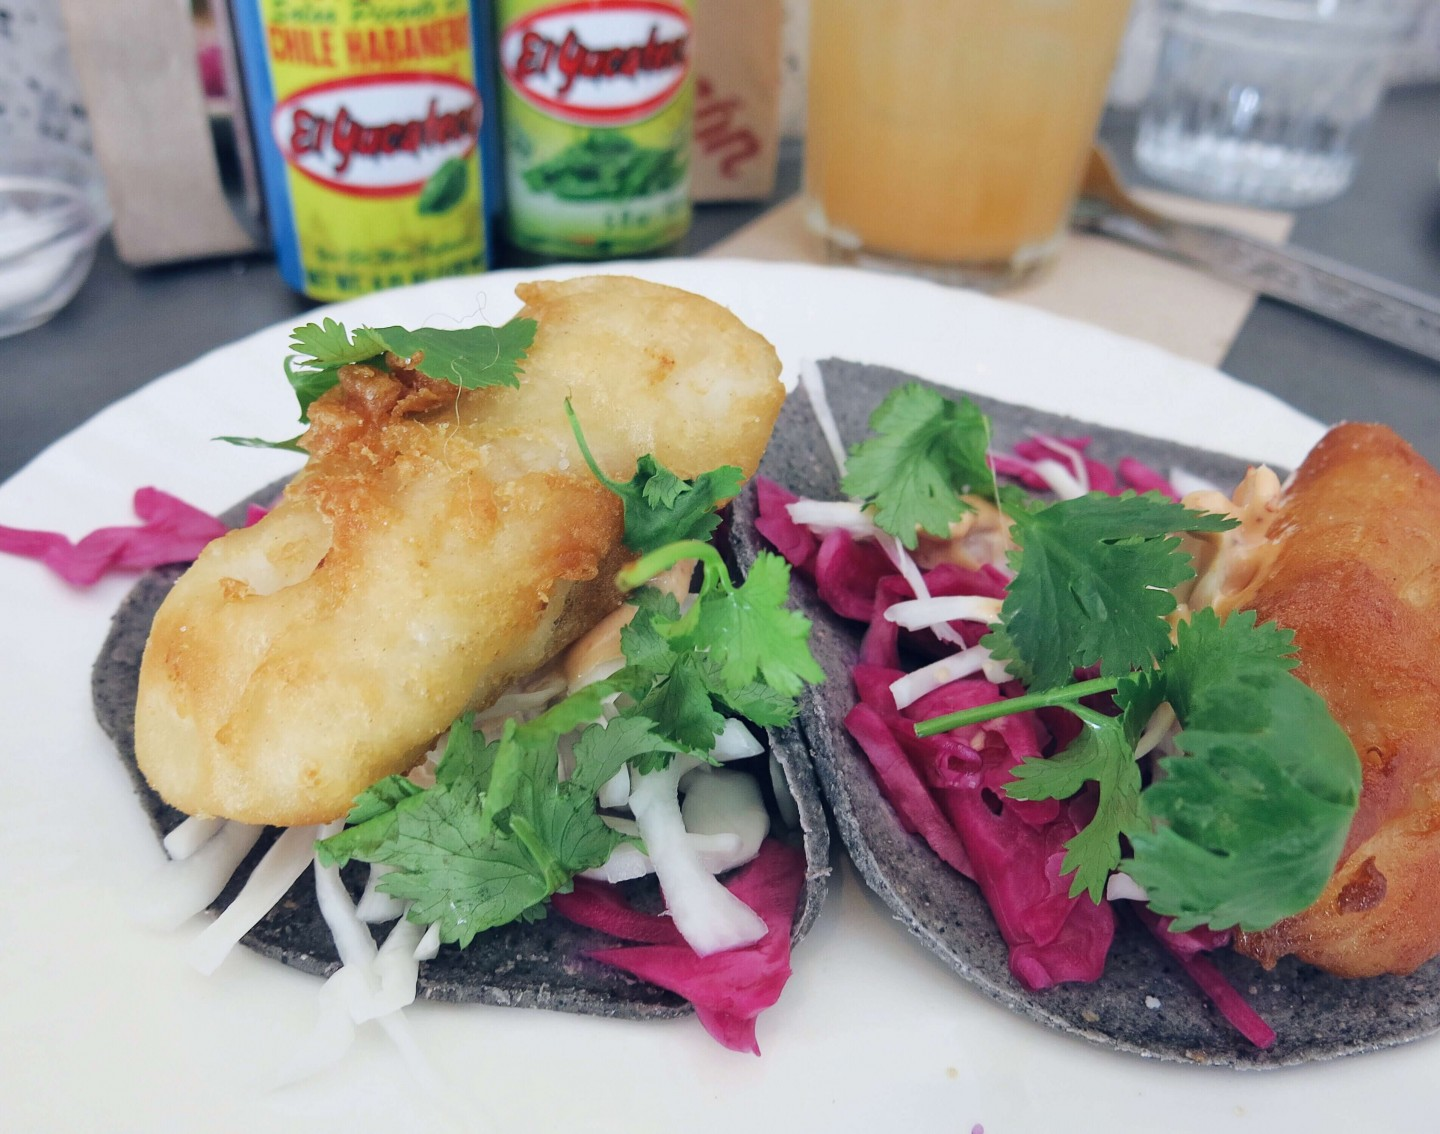 Corazón in Soho, London, offer a great lunchtime taco deal. Lunch for under £10 in the heart of Soho!